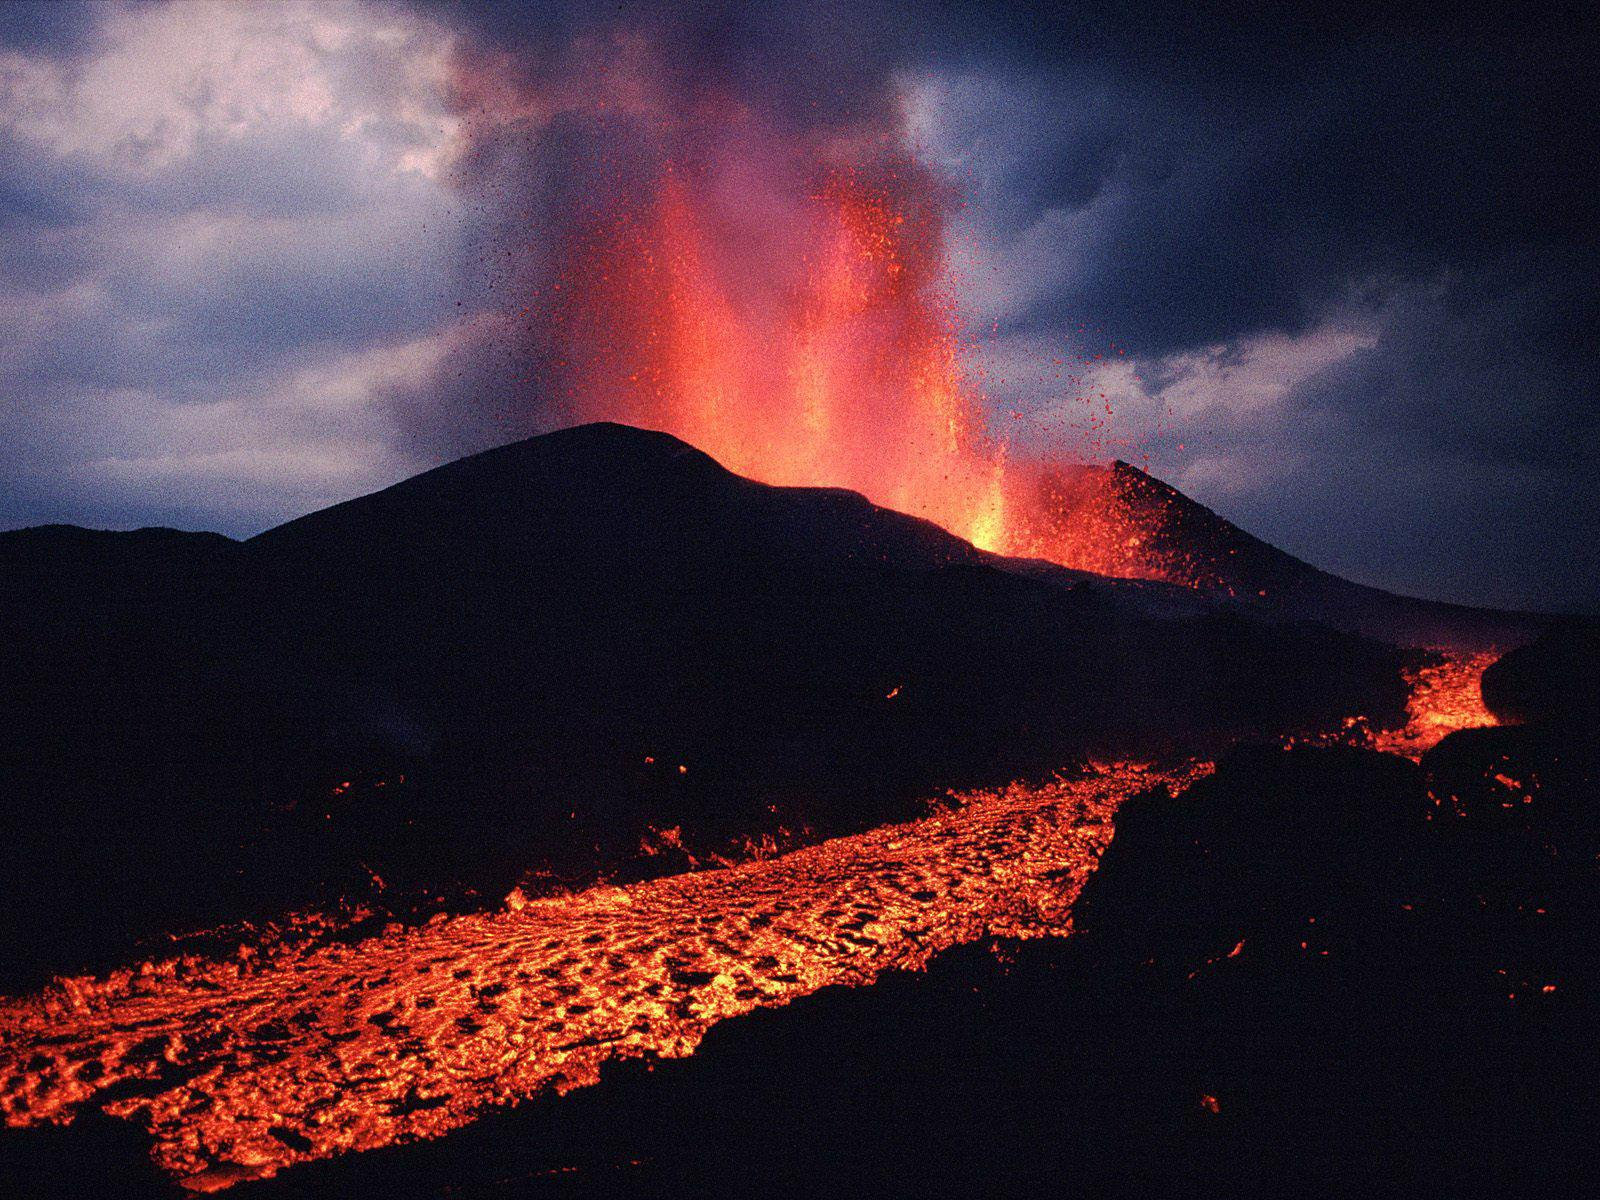 Desktop, wallpapers, volcano, backgrounds, landscape, eruption